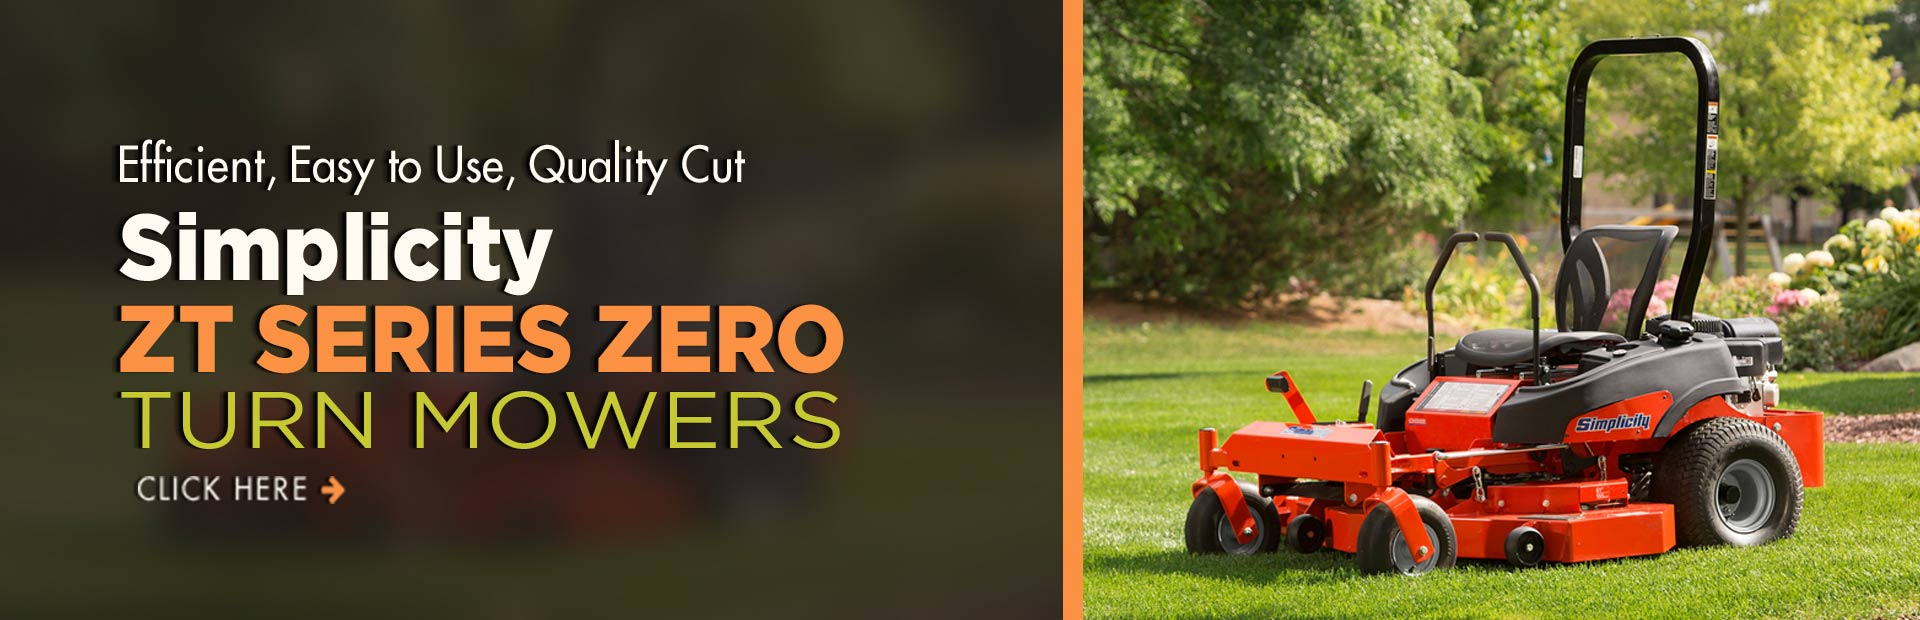 Click here to view our selection of Simplicity ZT series zero turn mowers!